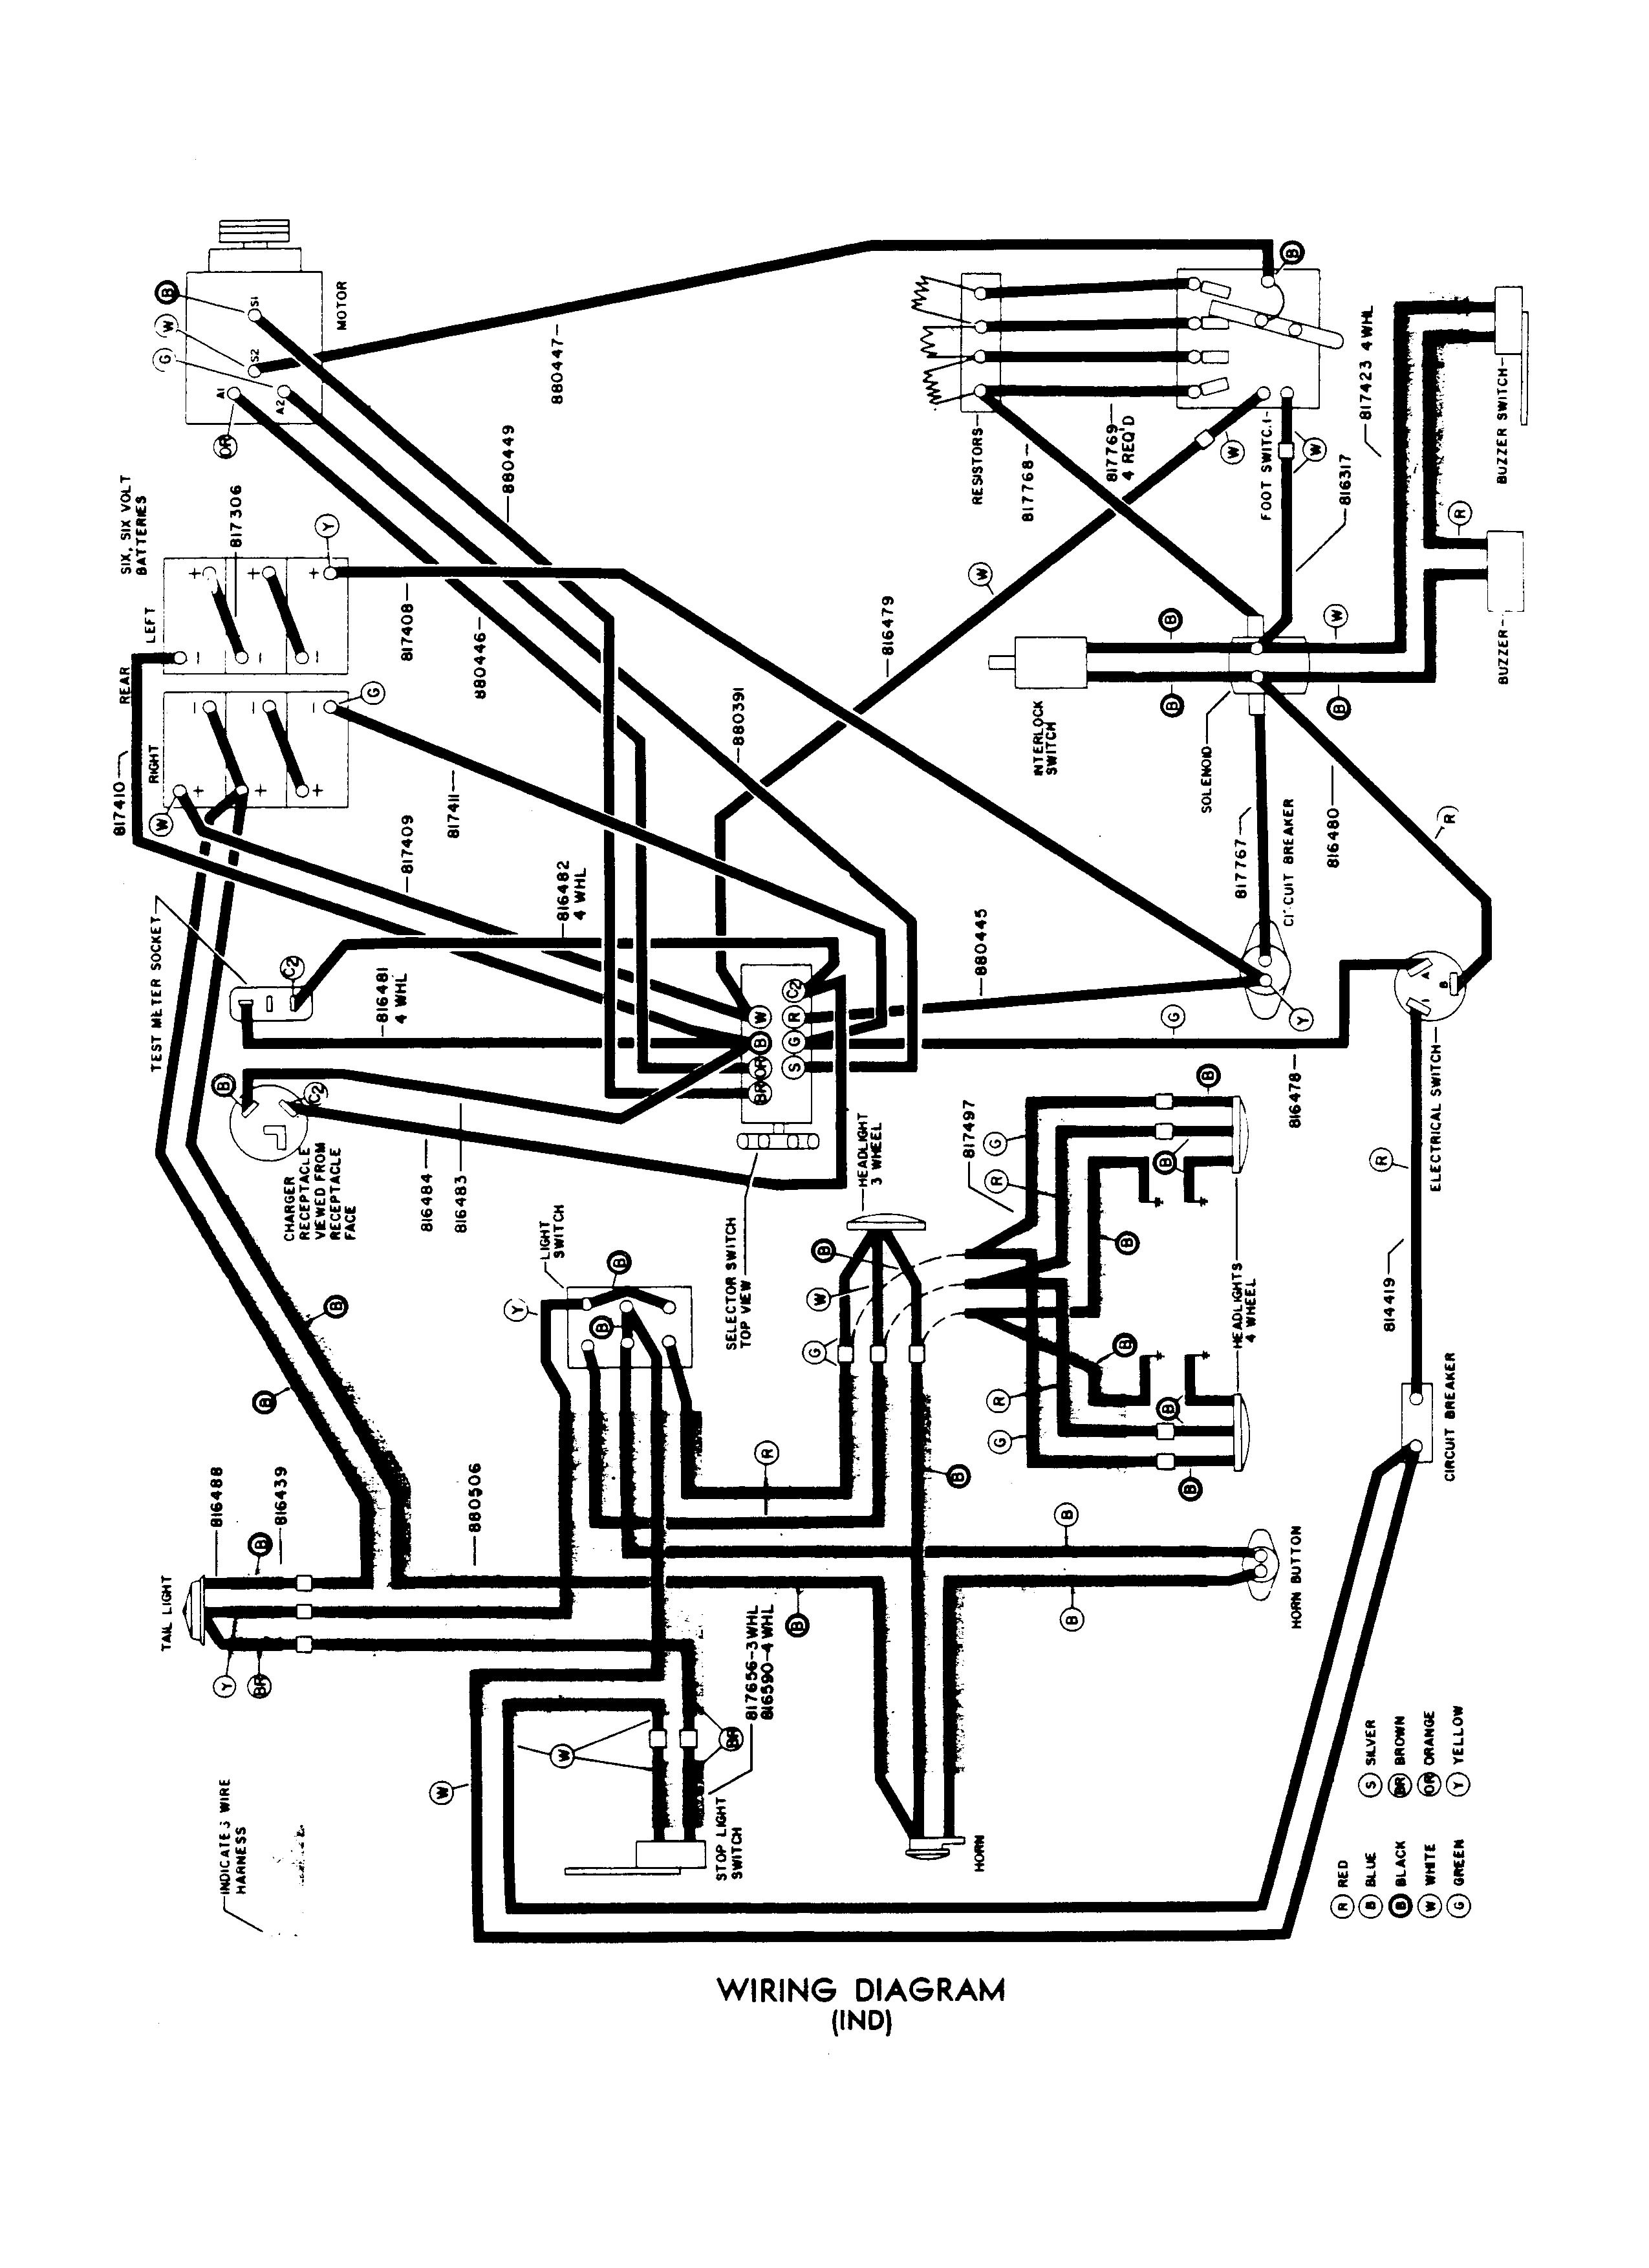 1995 yamaha g14 wiring diagram cycle powerpoint template free electrical drawing at getdrawings com for personal use 2550x3507 high efficiency electric generator patent application diagrams